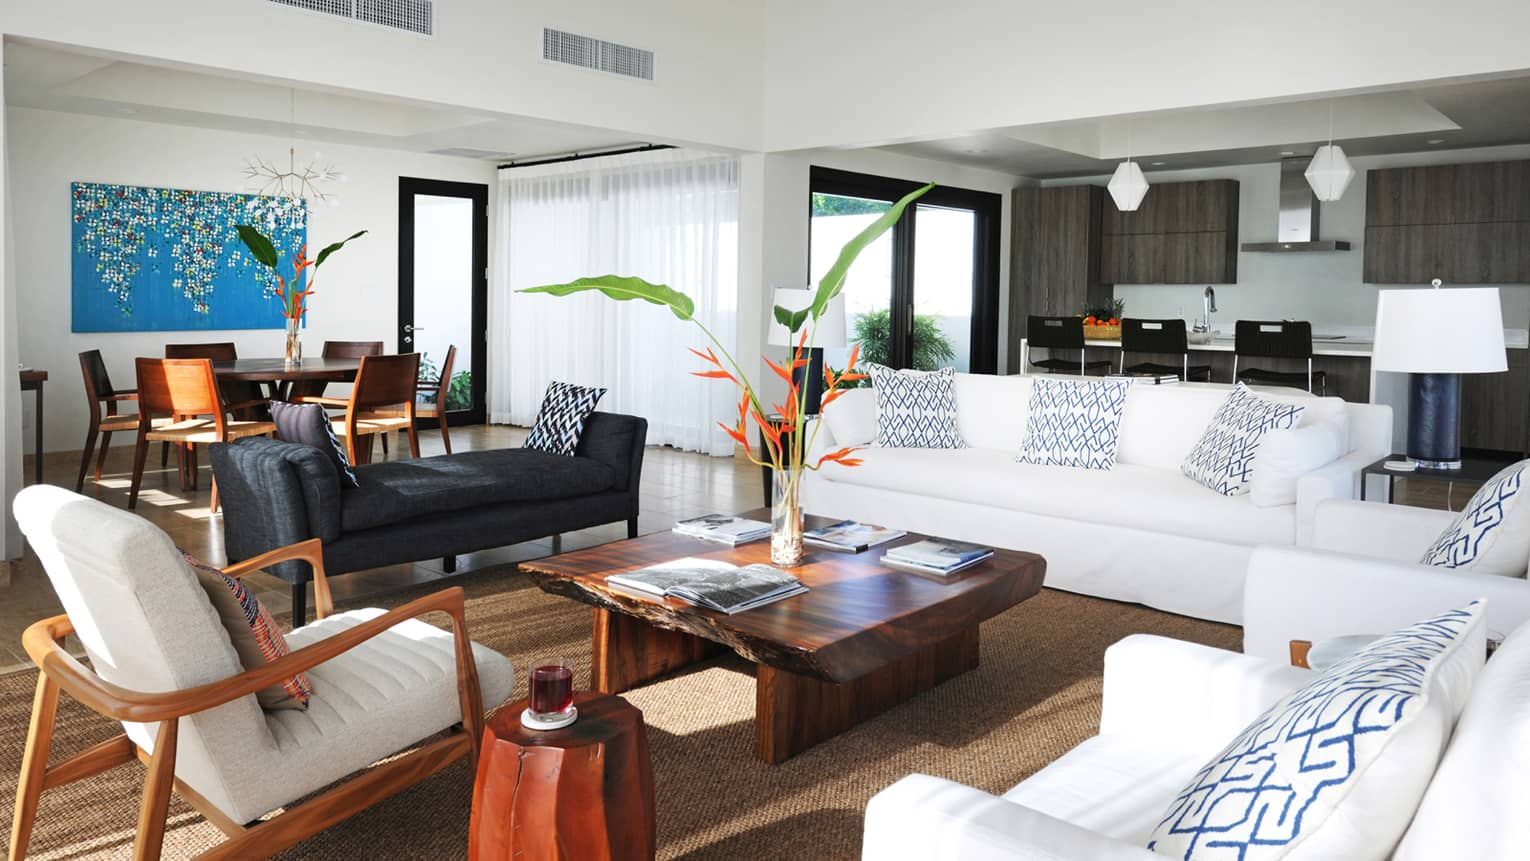 Pinney's Beach Residence Villa living room with white sofas, chairs, rustic wood table